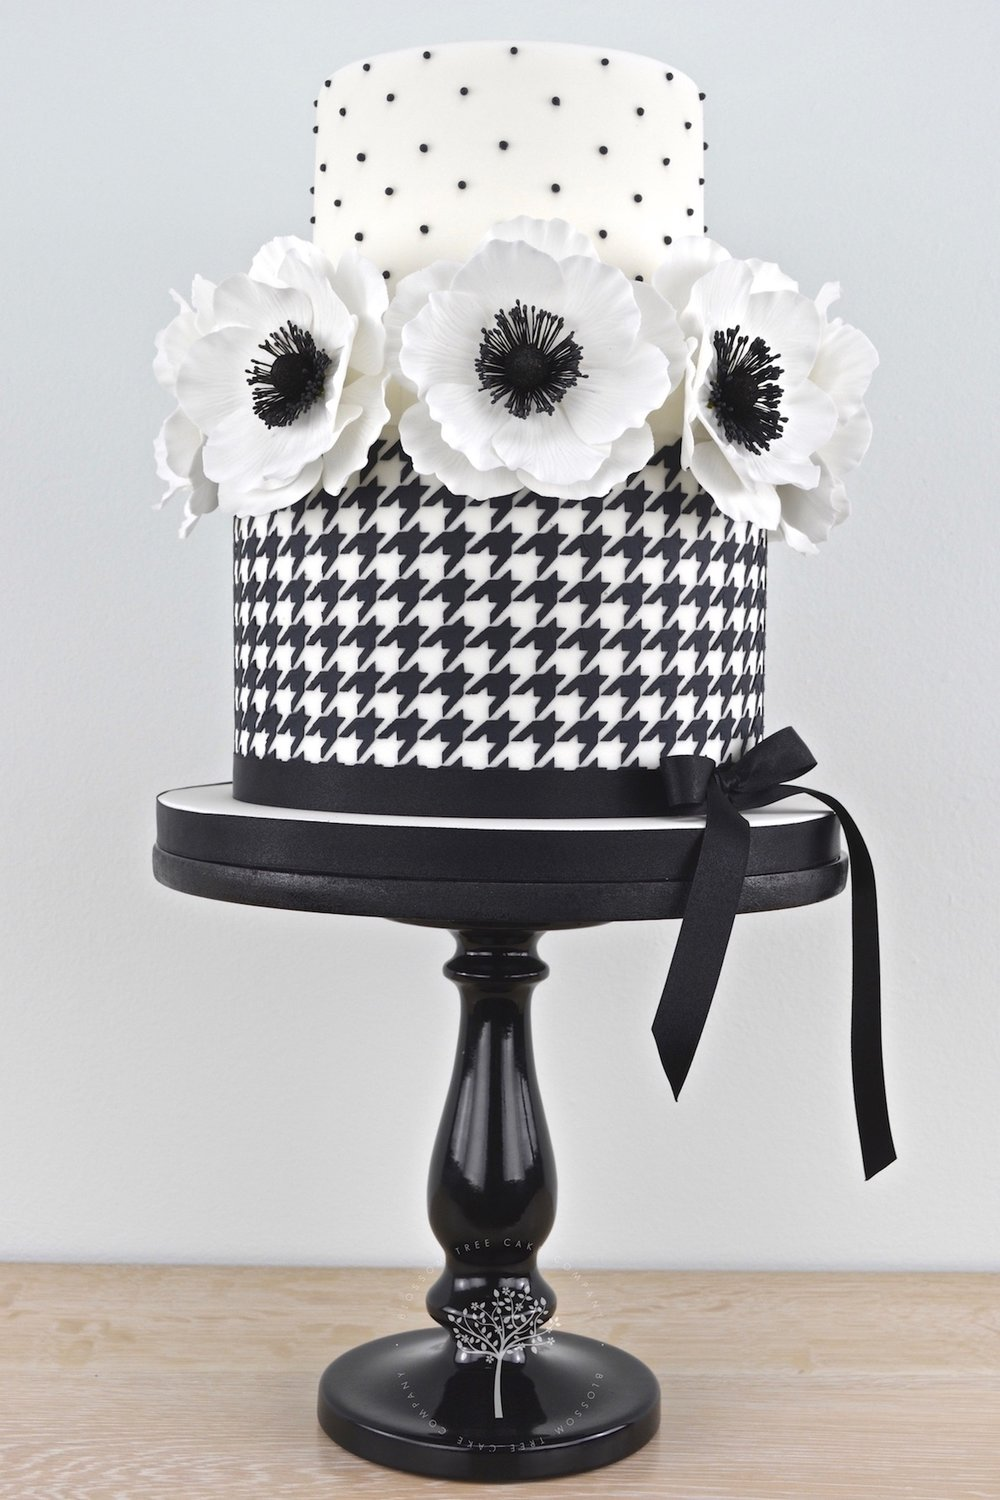 Houndstooth and Anemones celebration cake by Blossom Tree Cake Company Harrogate North Yorkshire.jpg